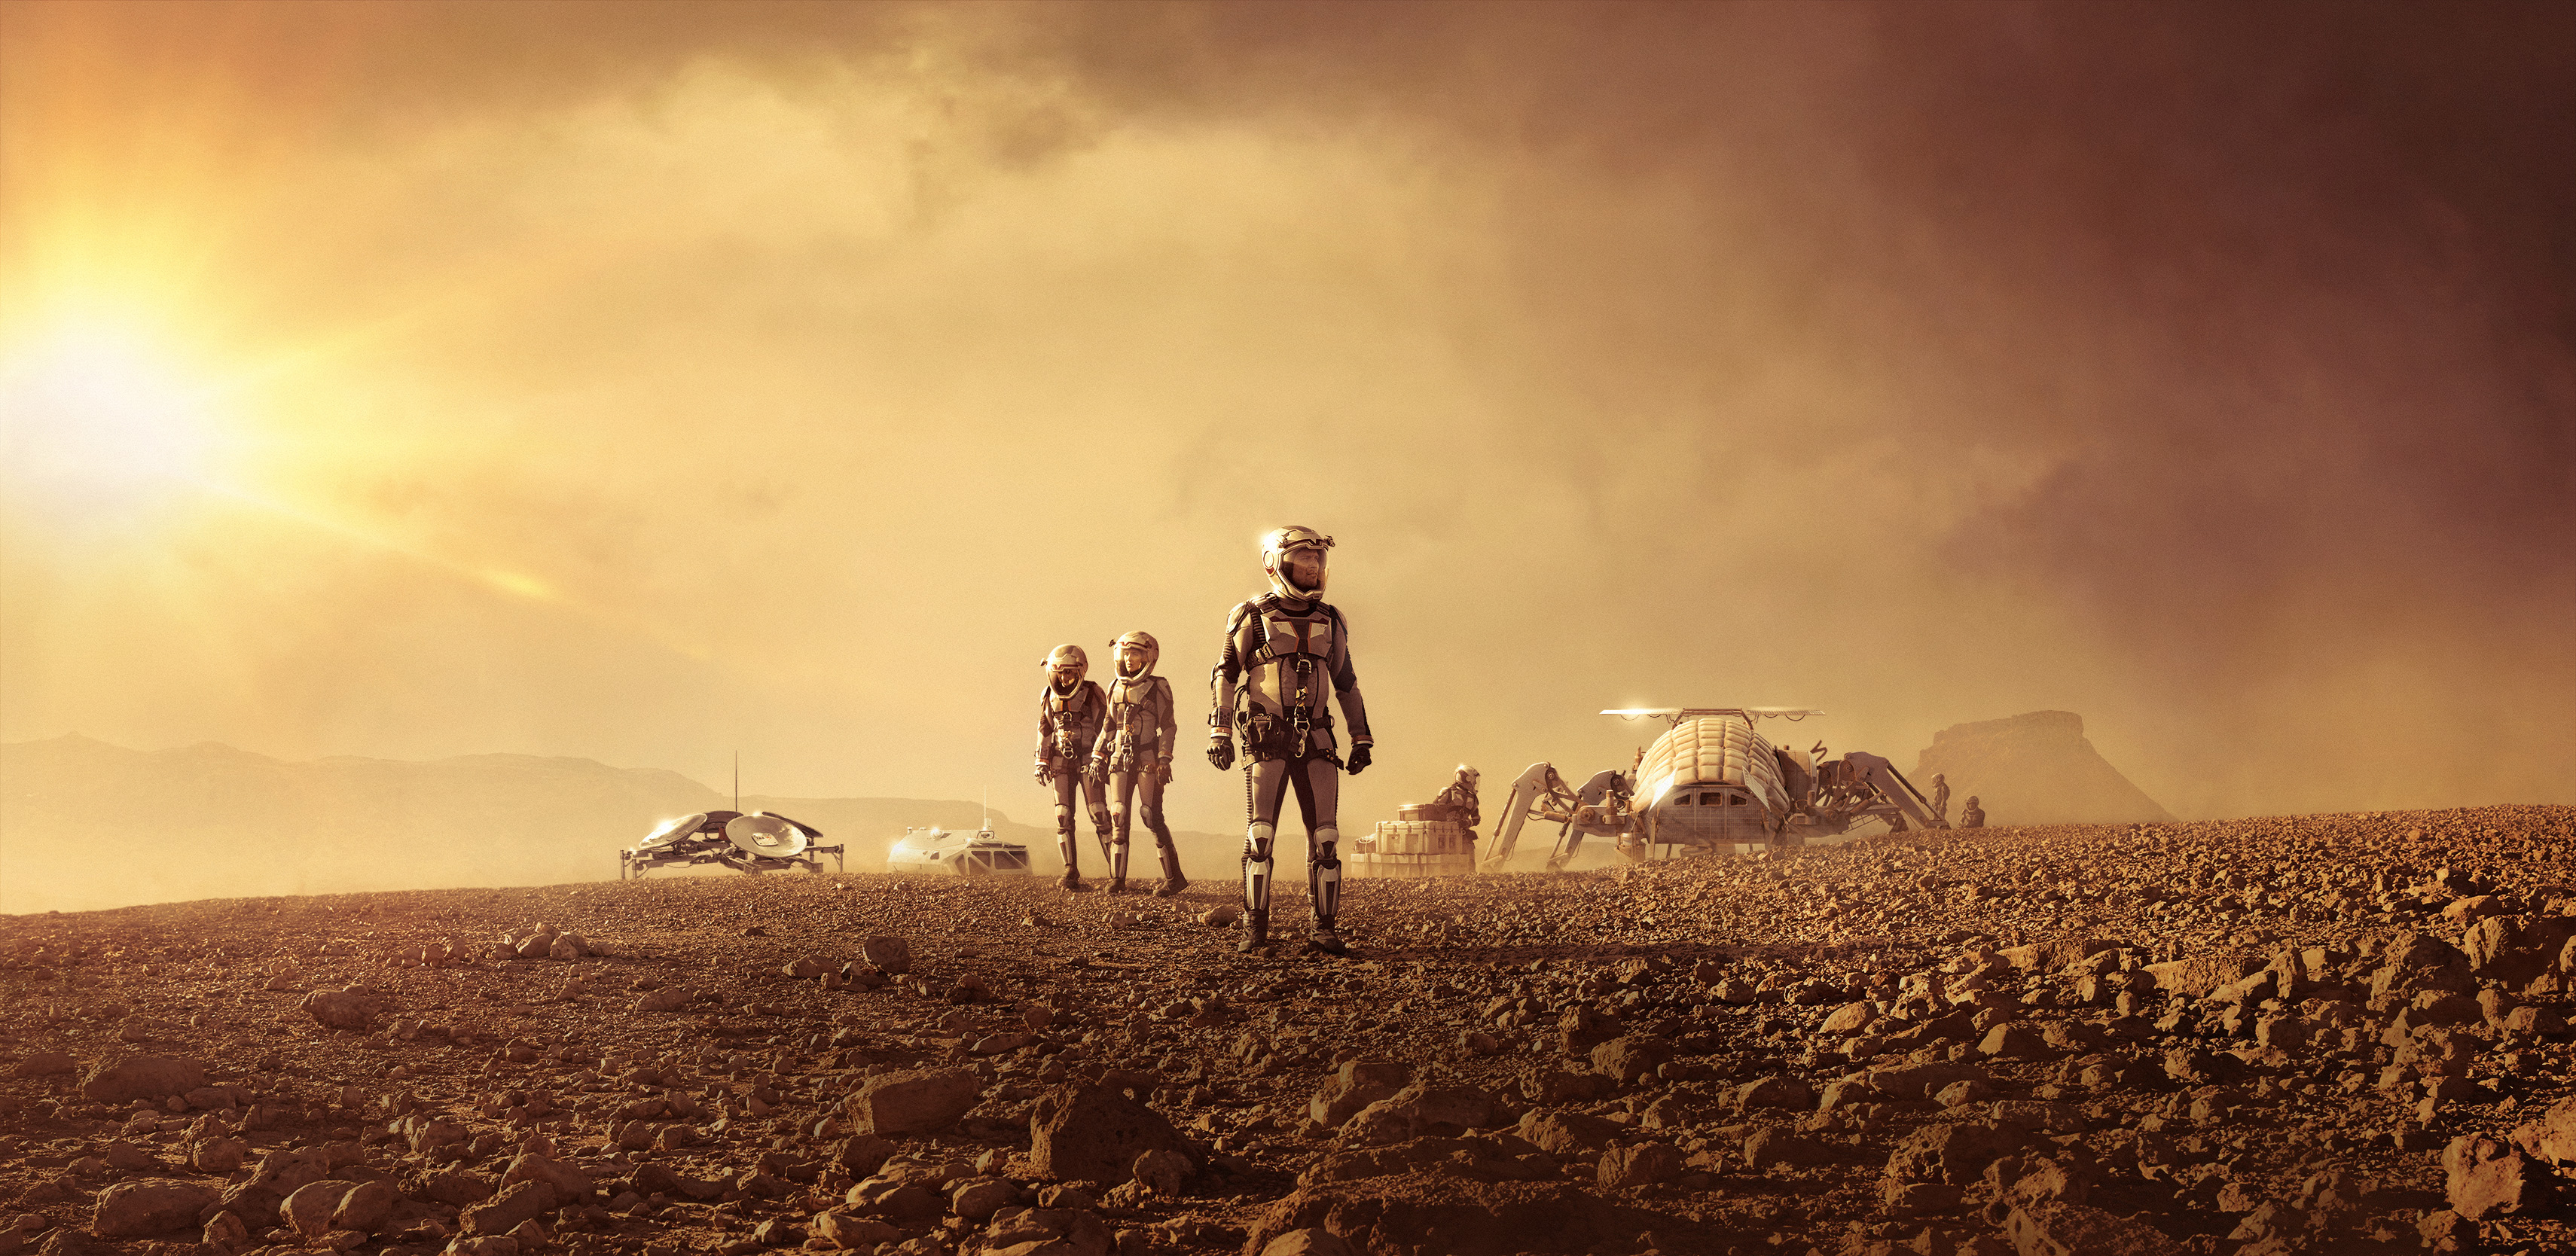 'Mars': The Epic National Geographic Channel Miniseries in Pictures